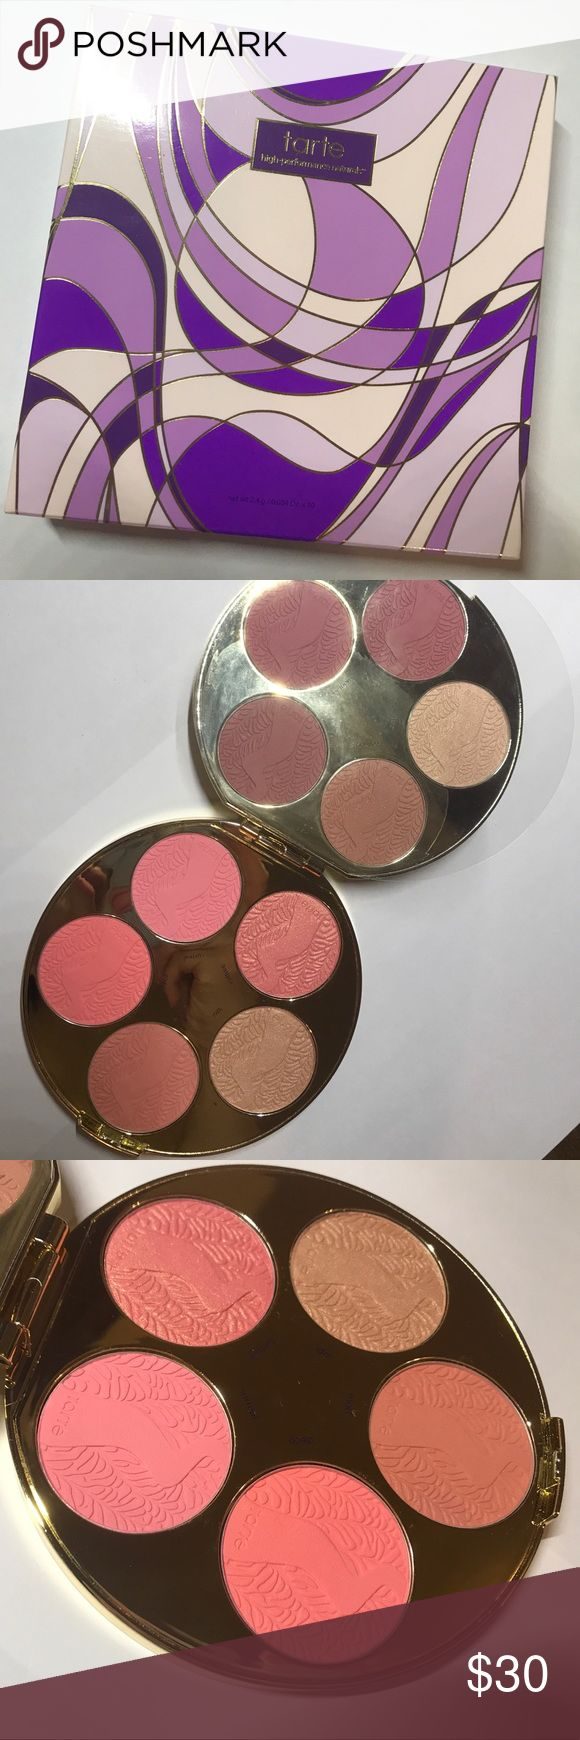 Tarte holiday 2016 blush palette-limited edition- Tarte holiday 2016 blush palette-limited edition-full size blush palette-never used- only swatch one of the highlighters in it-comes with original box-0.84oz tarte Makeup Blush